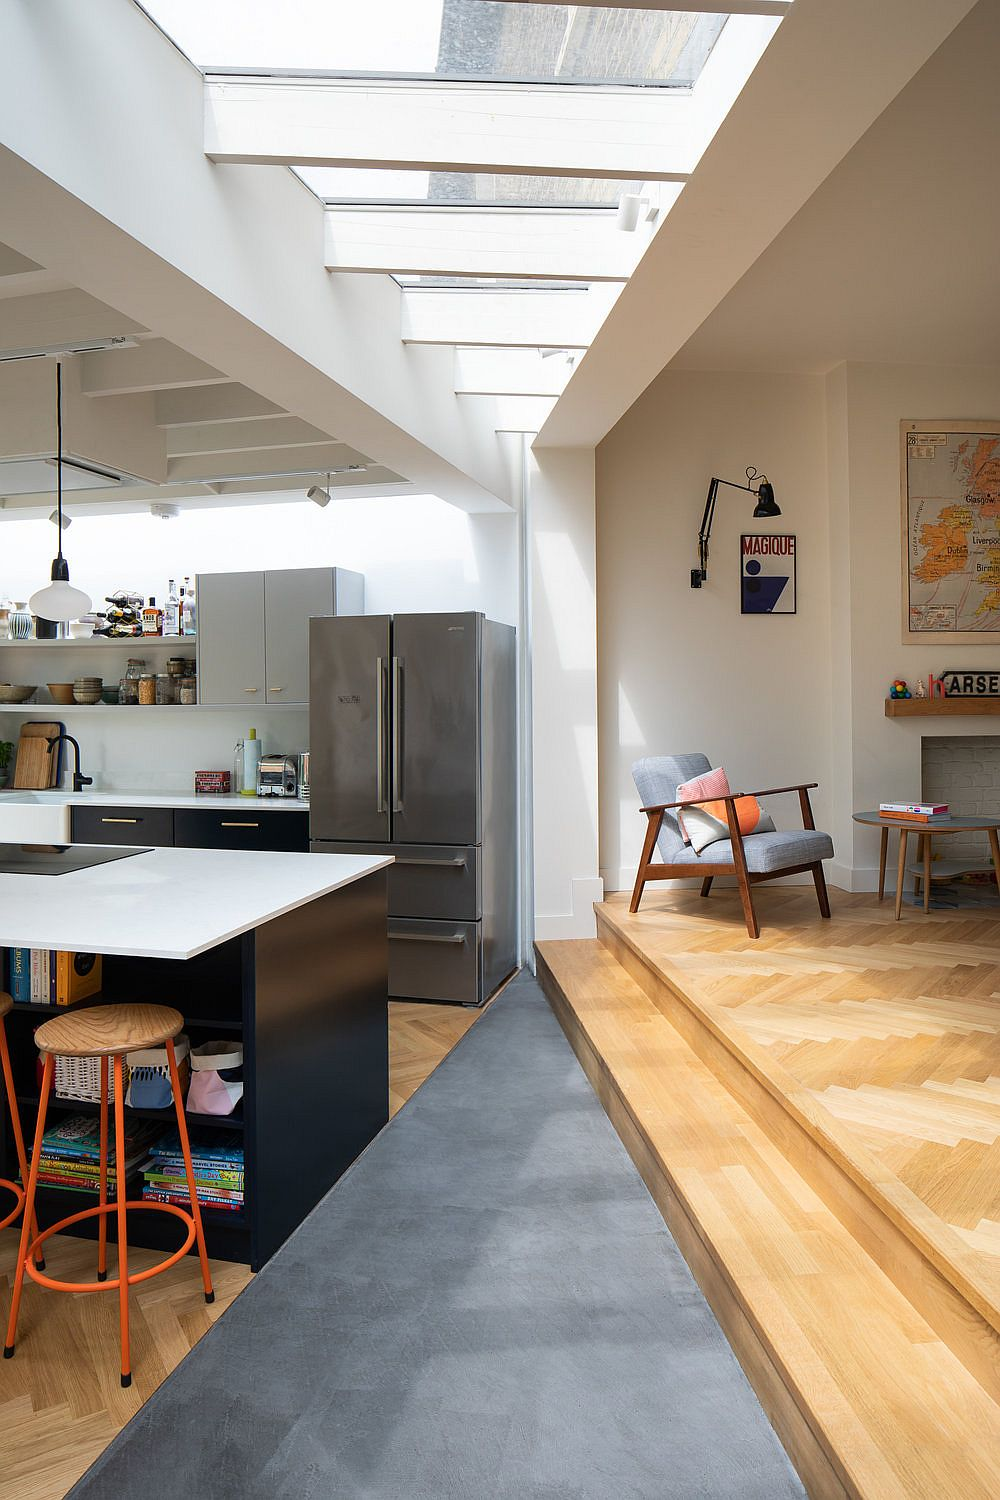 Raised level inside the home delineates the living area from the kitchen and dining space next to it in a subtle fashion